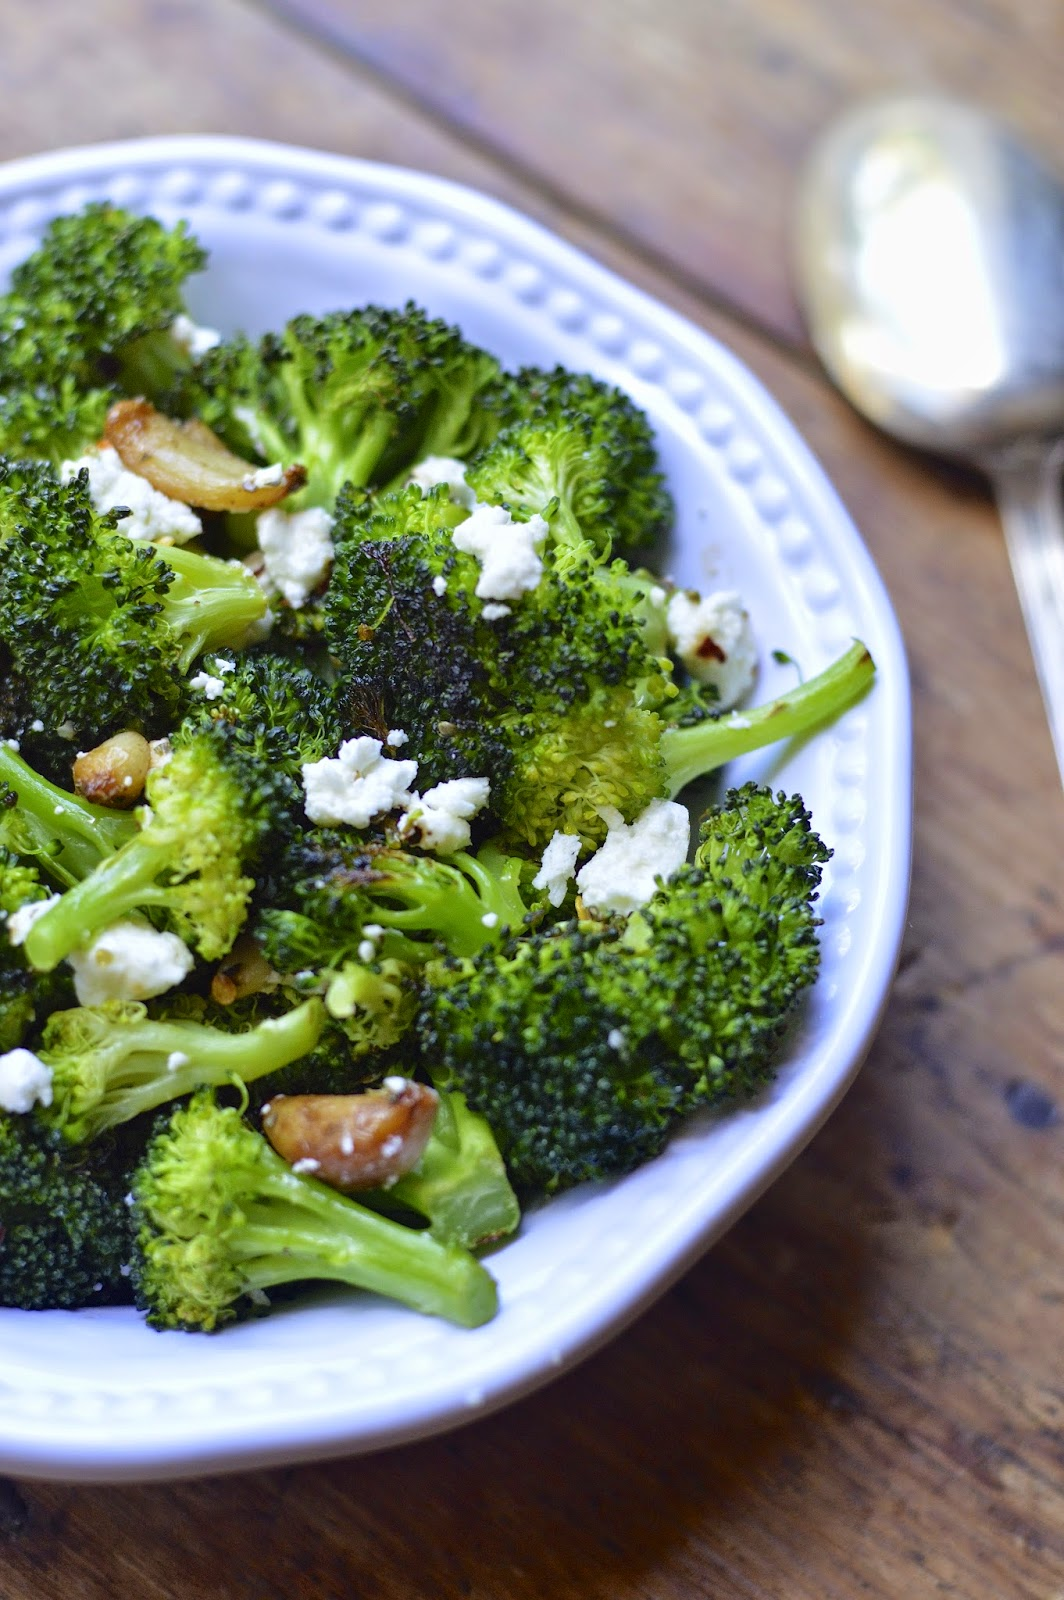 Roasted Broccoli and Garlic with Feta Will Make Anyone Become a Broccoli Lover! www.virtuallyhomemade.com